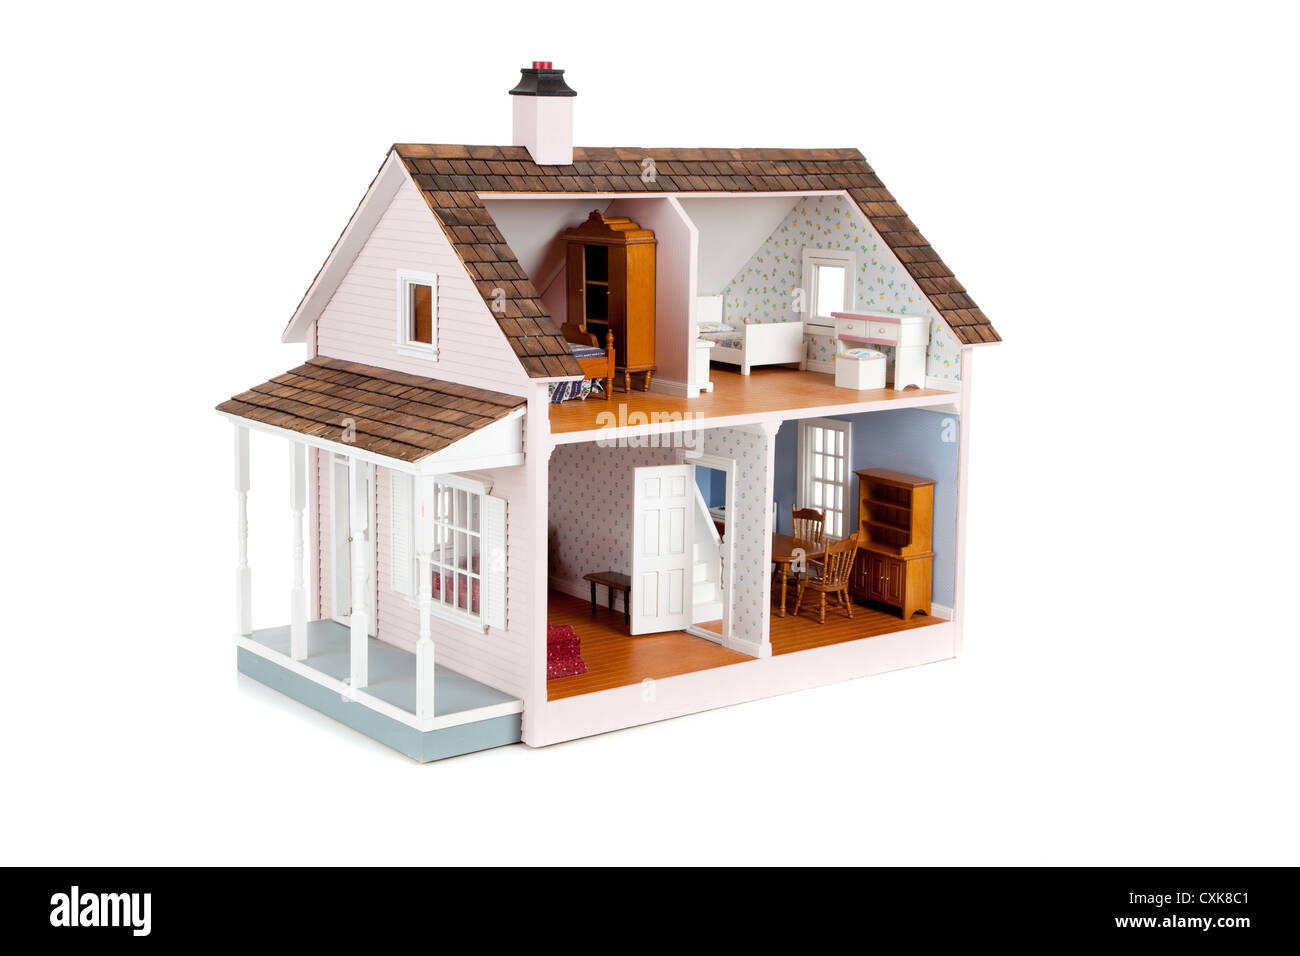 Pink Wooden Doll House On A White Background Stock Photo 50825489